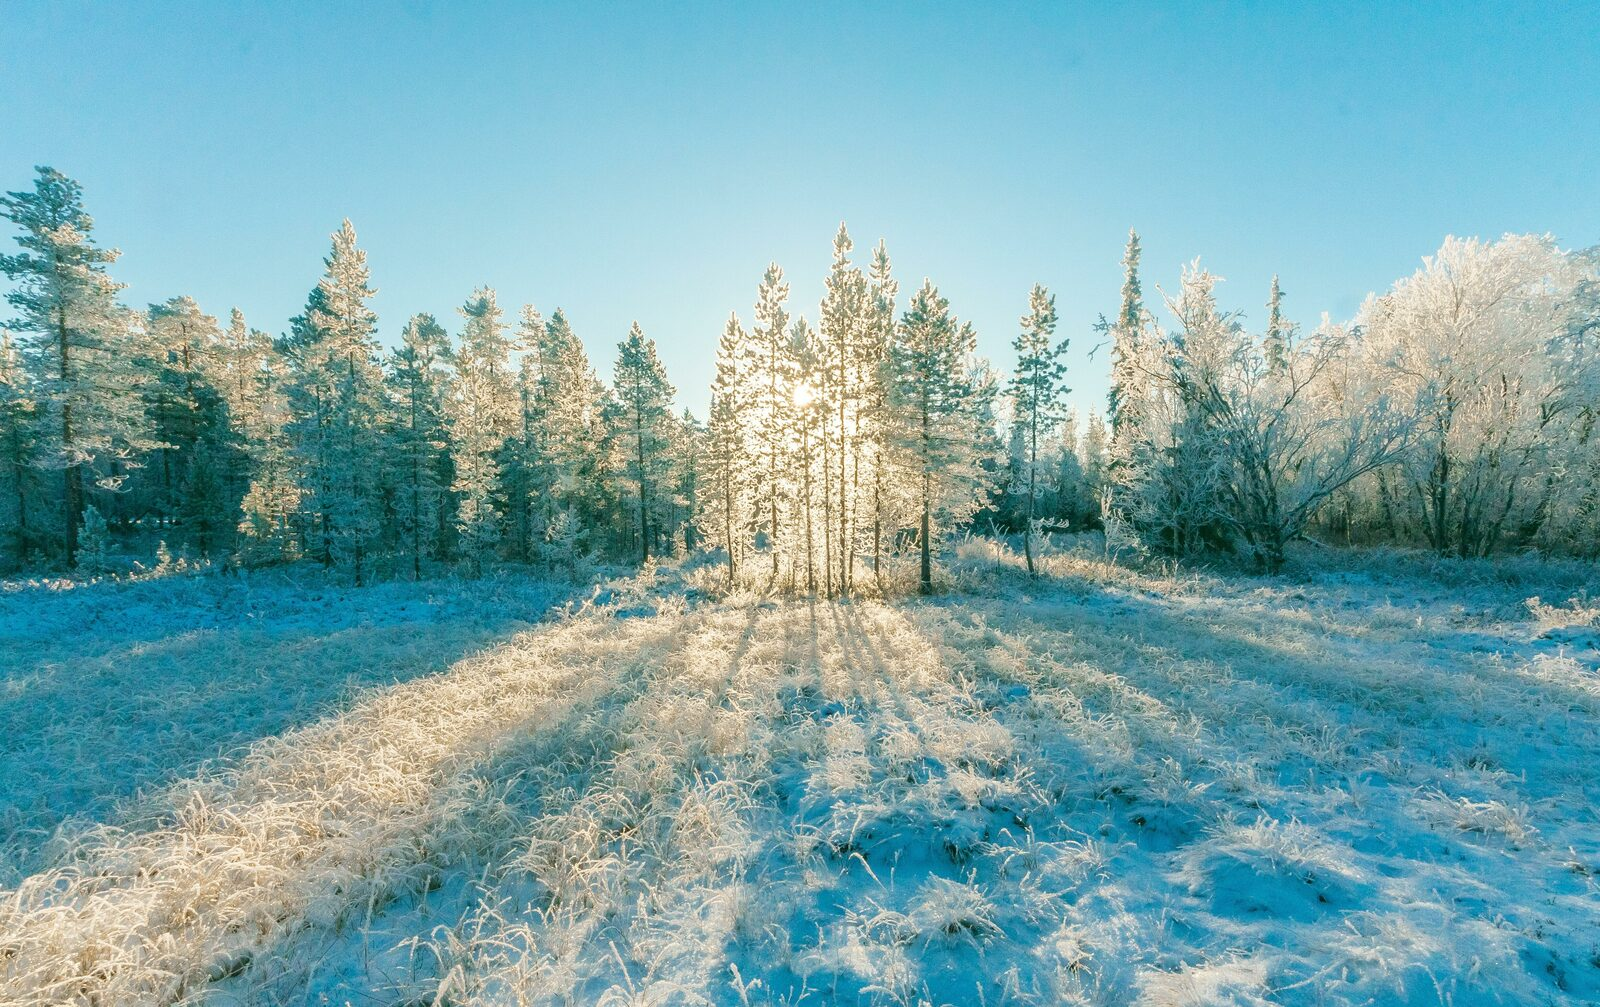 Natuurpark in winter